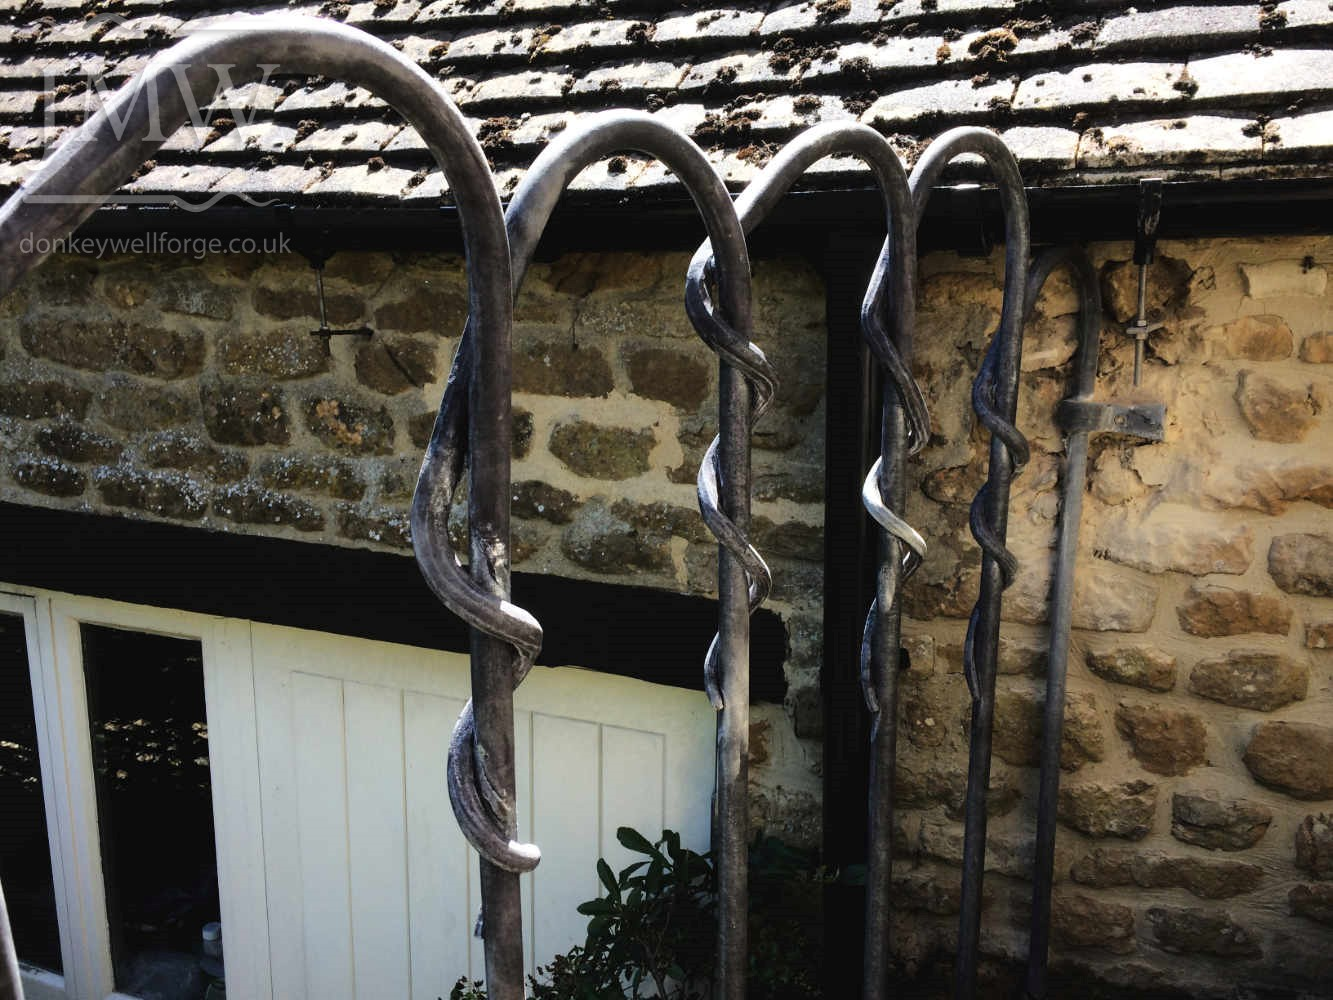 stair-railing-bespoke-zinc-lead-finish-iron-flowers-garden-donkeywell-detail-donkeywell-forge